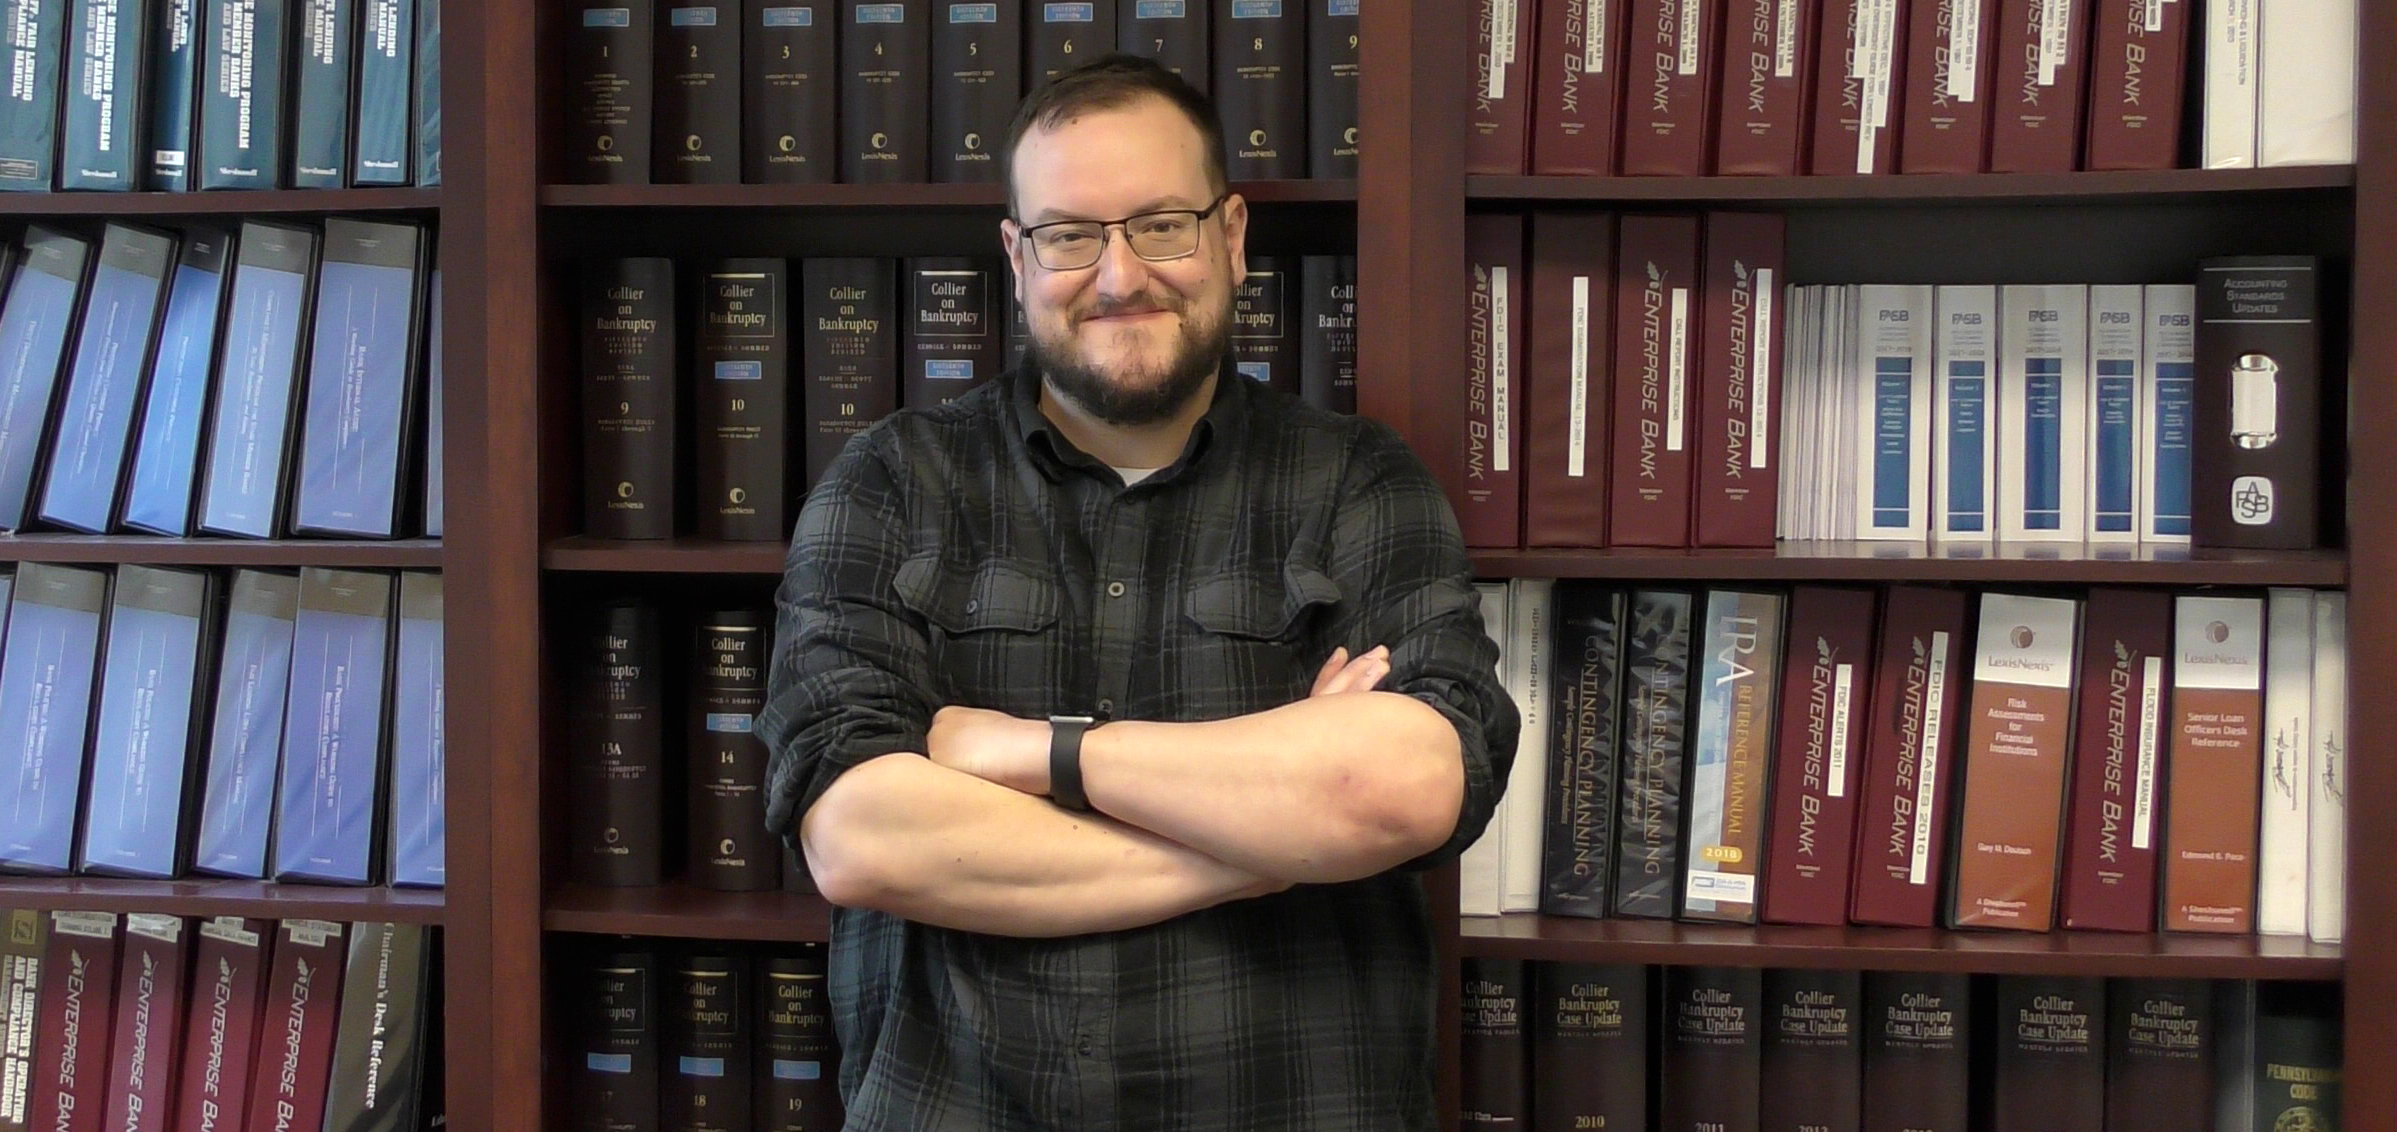 A smiling gentleman stands with his arms crossed. He is wearing a flannel shirt, glasses, and he has a beard. He stands in front of a bookcase.